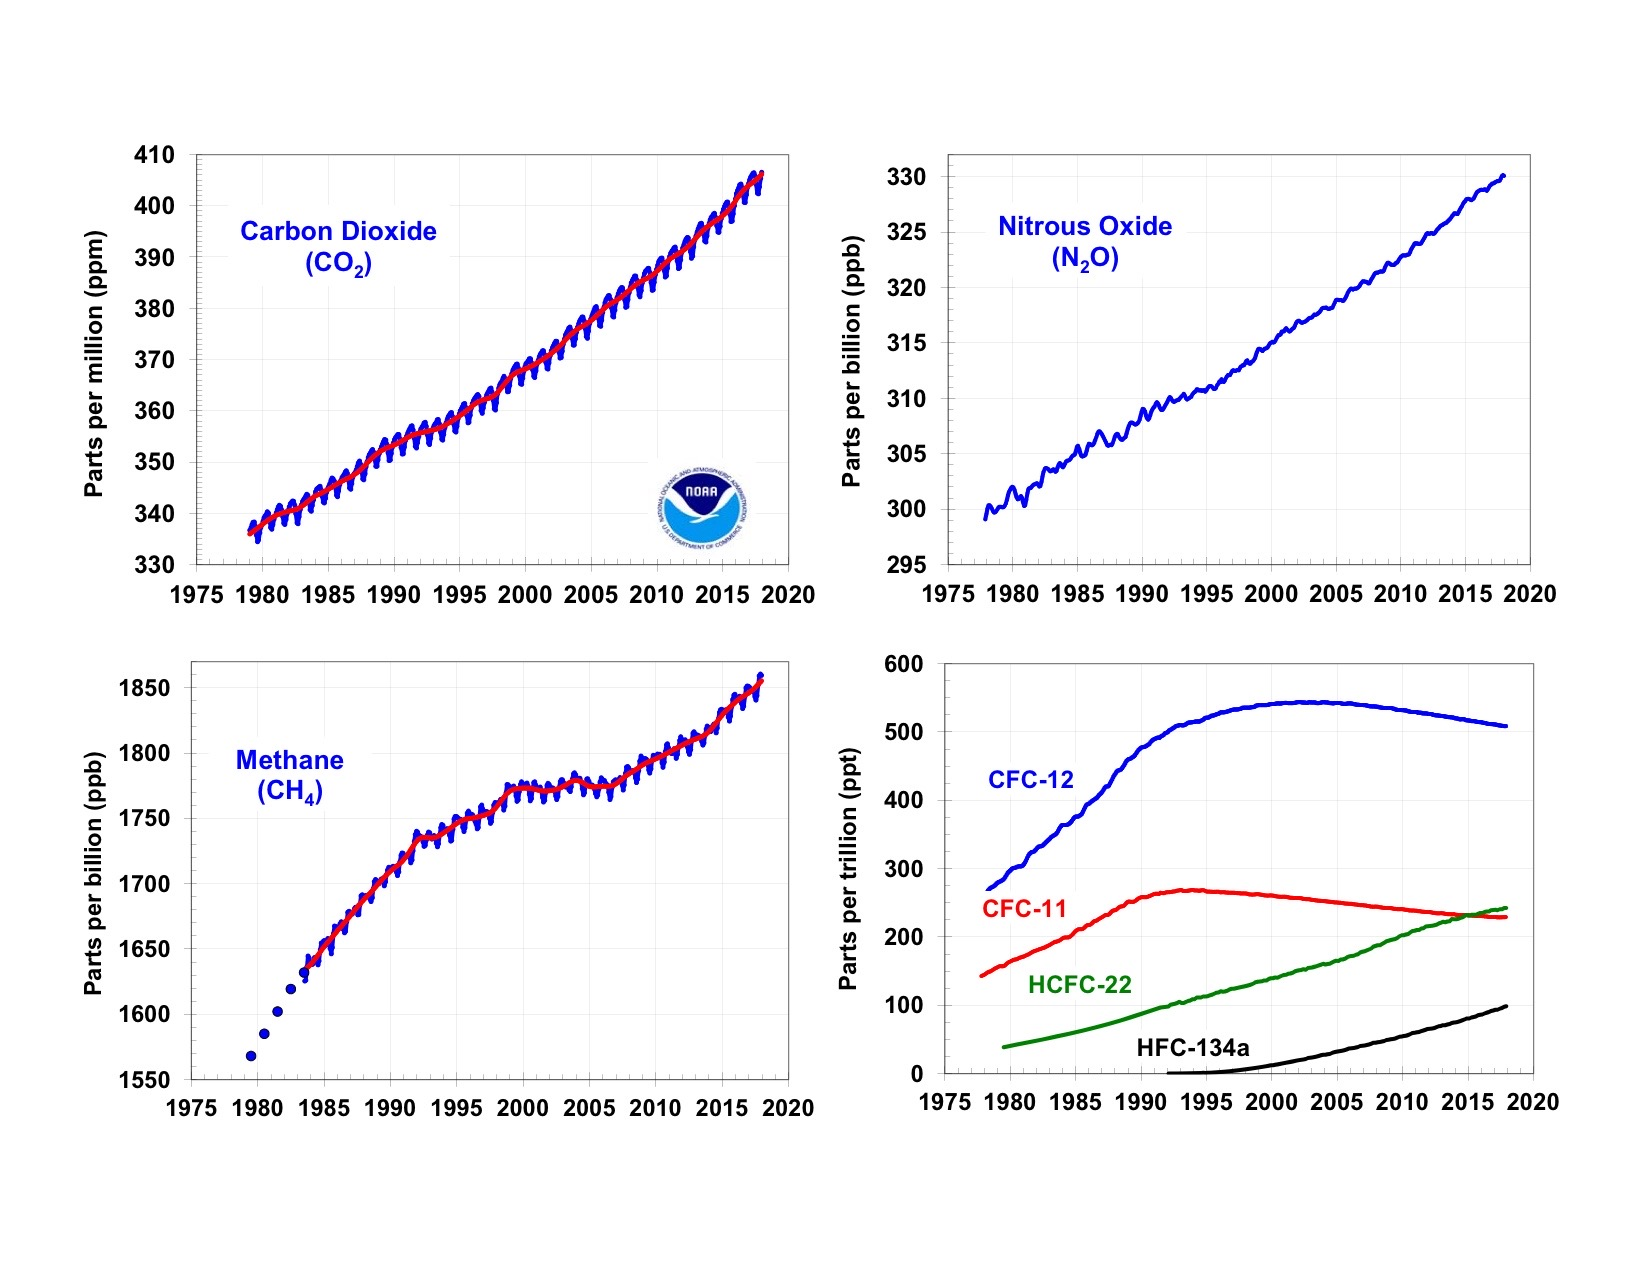 NOAA's greenhouse gas index up 41 percent since 1990